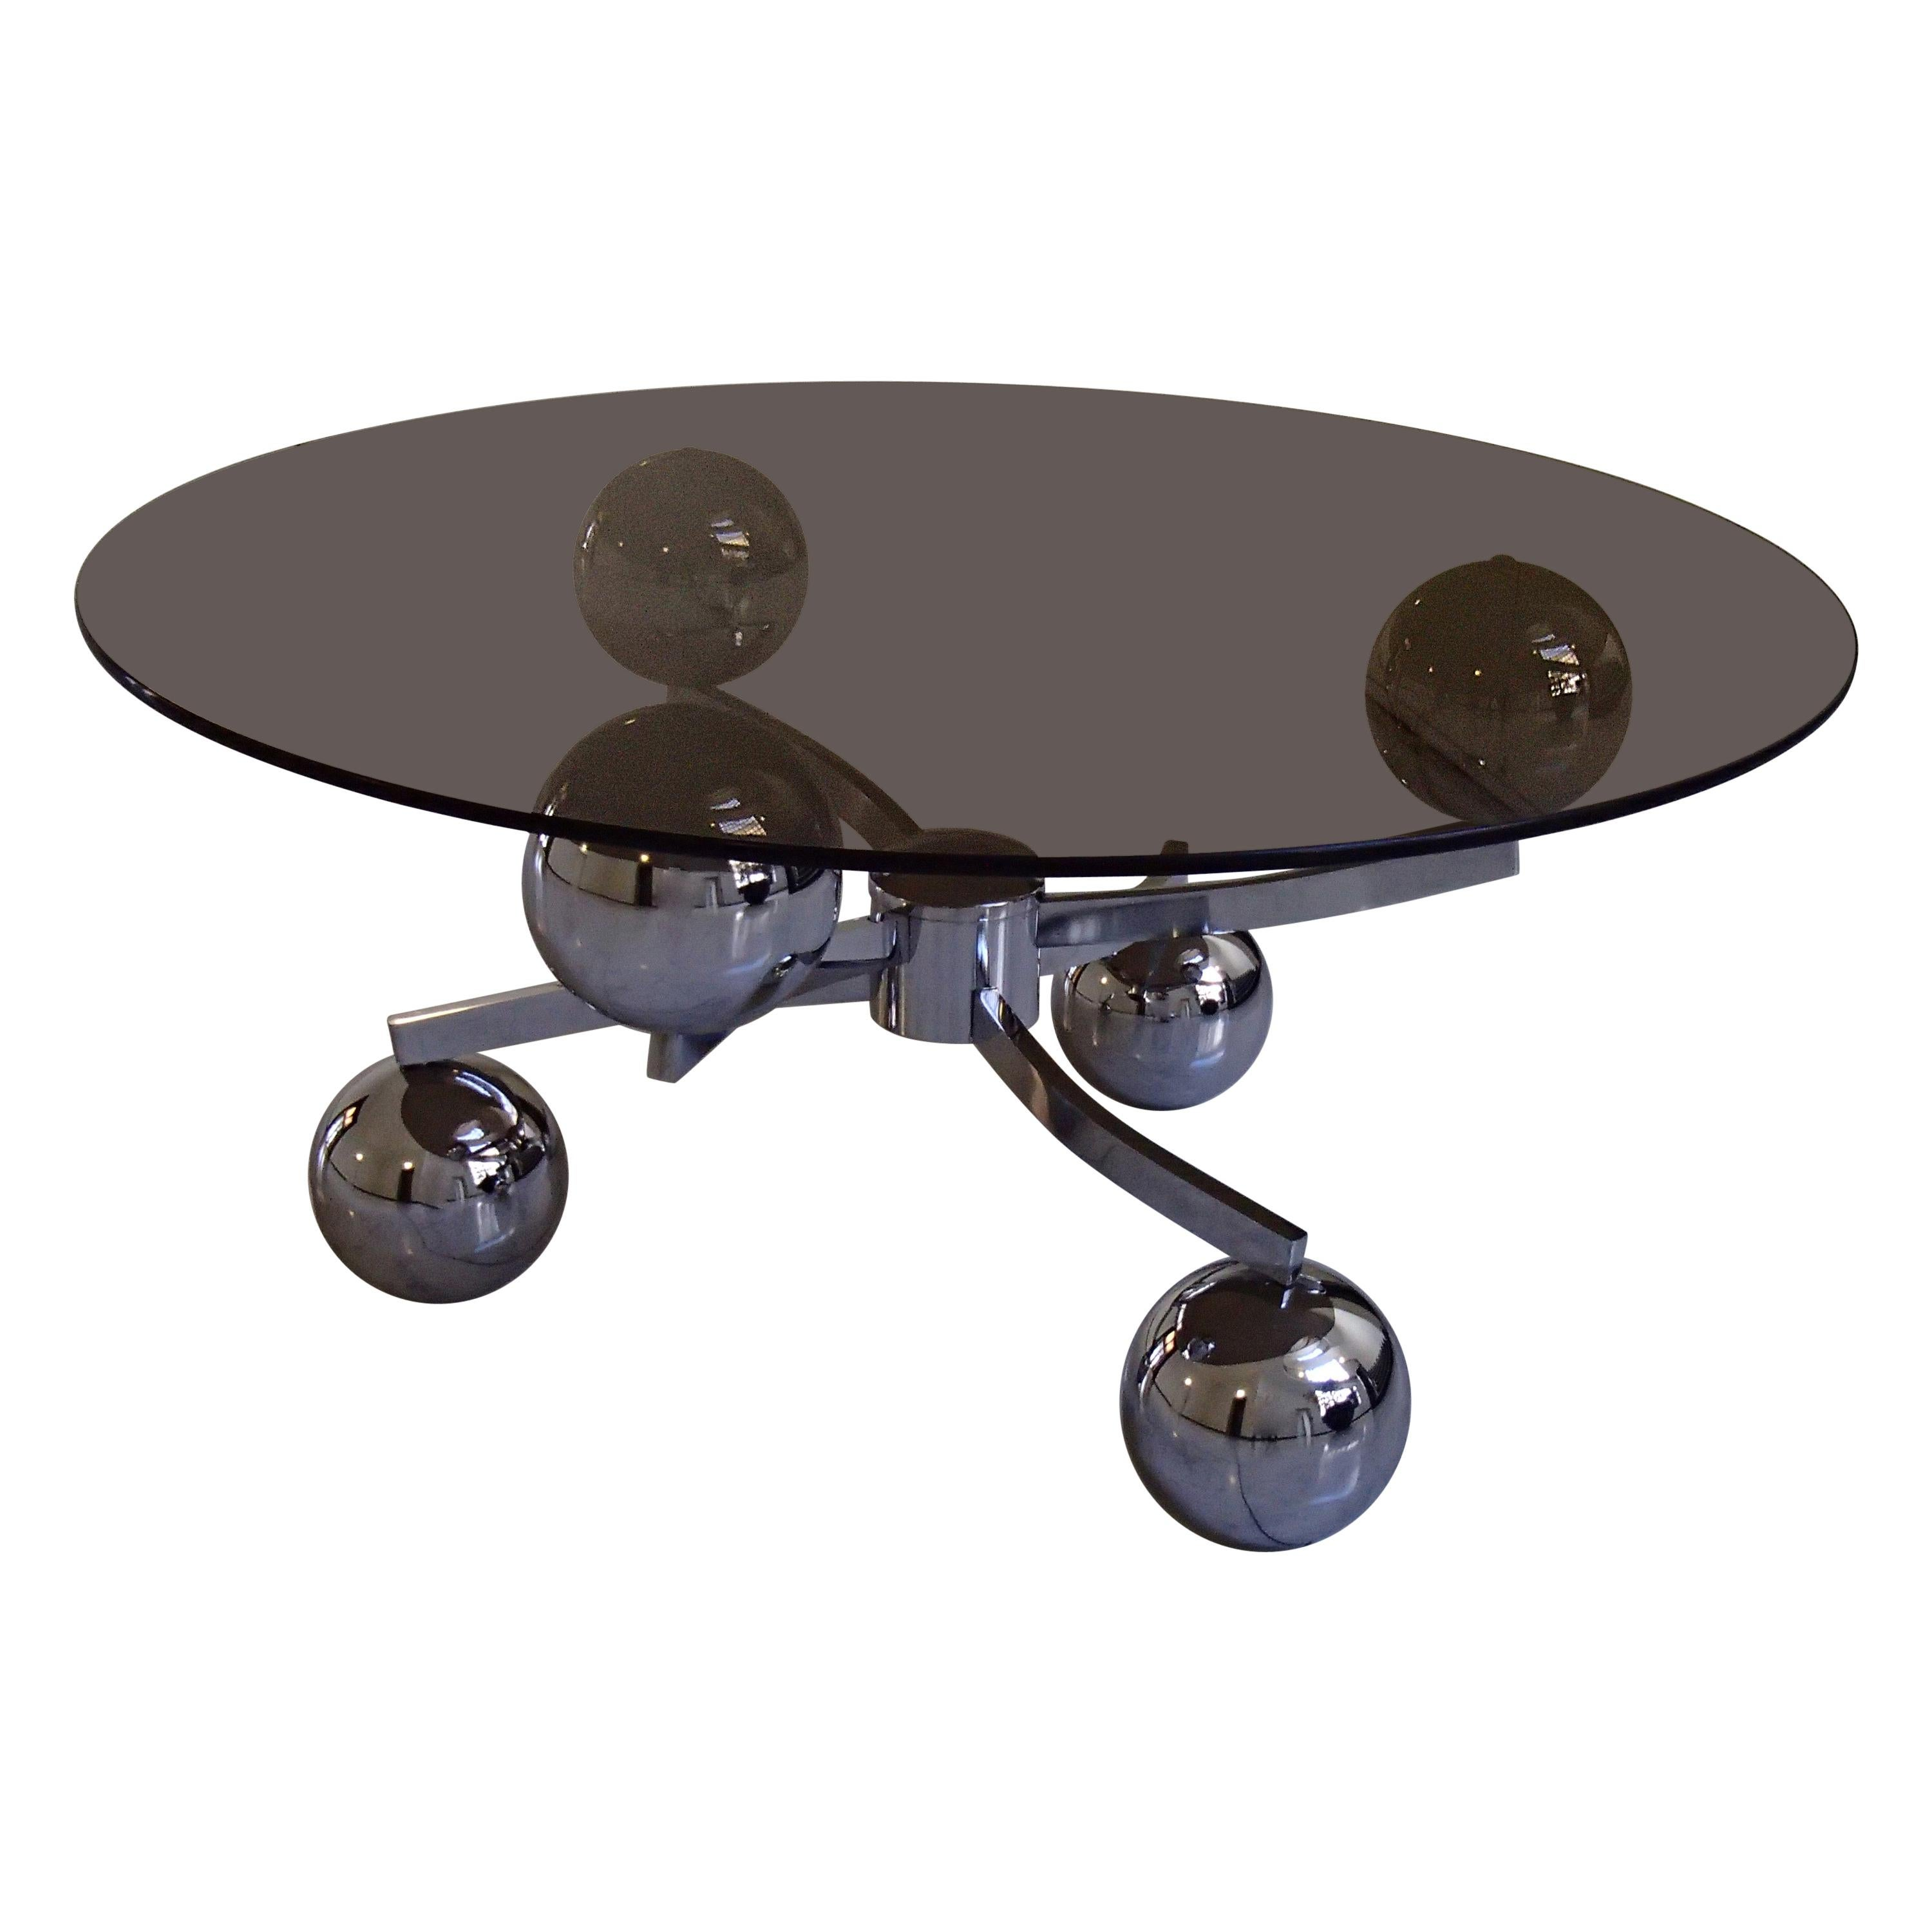 1970 This Planet Chrome Coffee Table Round Brown Glass Top